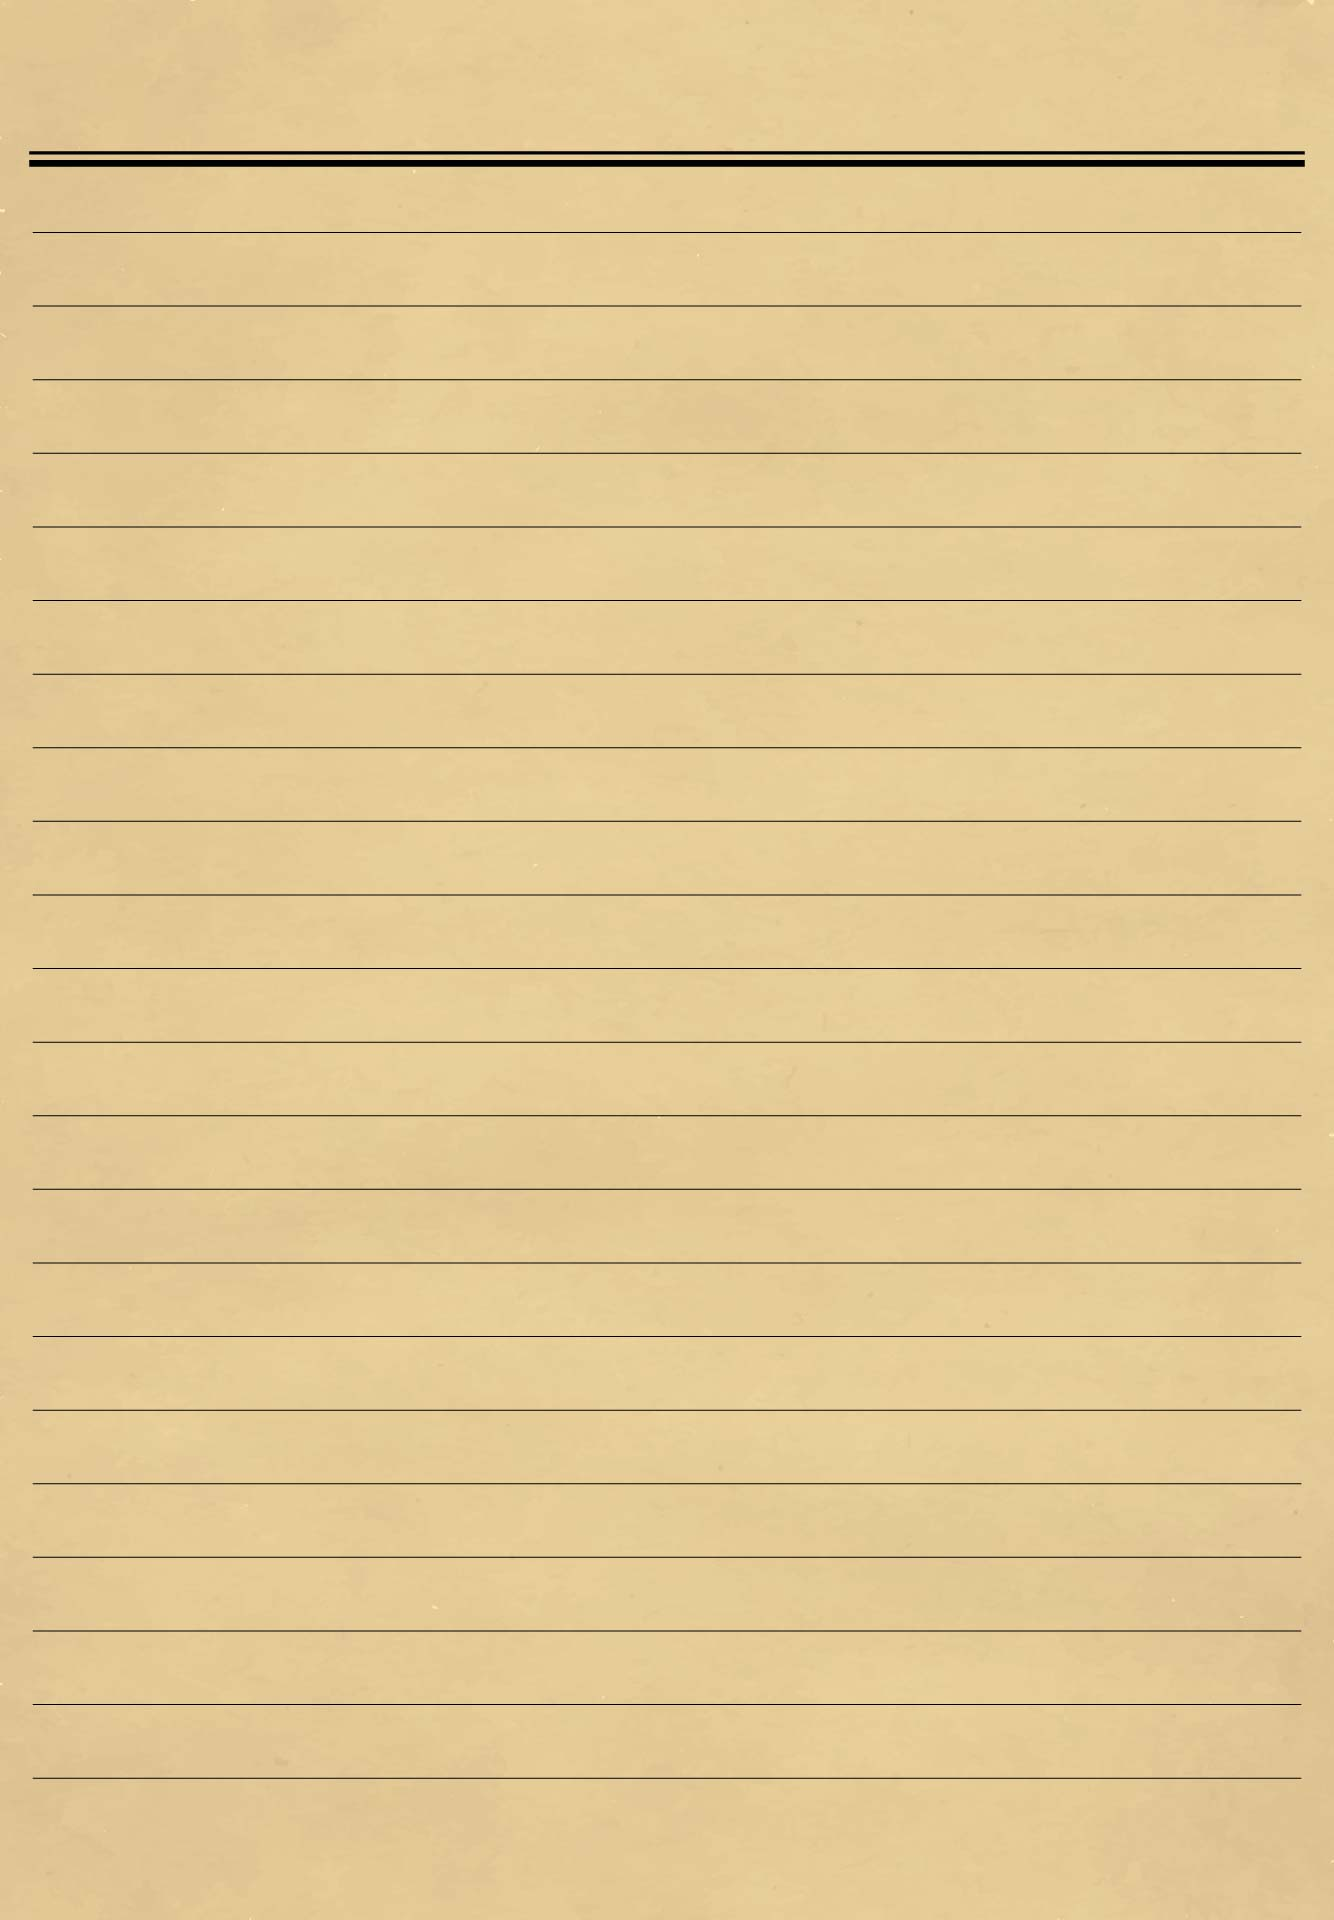 Old Lined Paper Template for Free